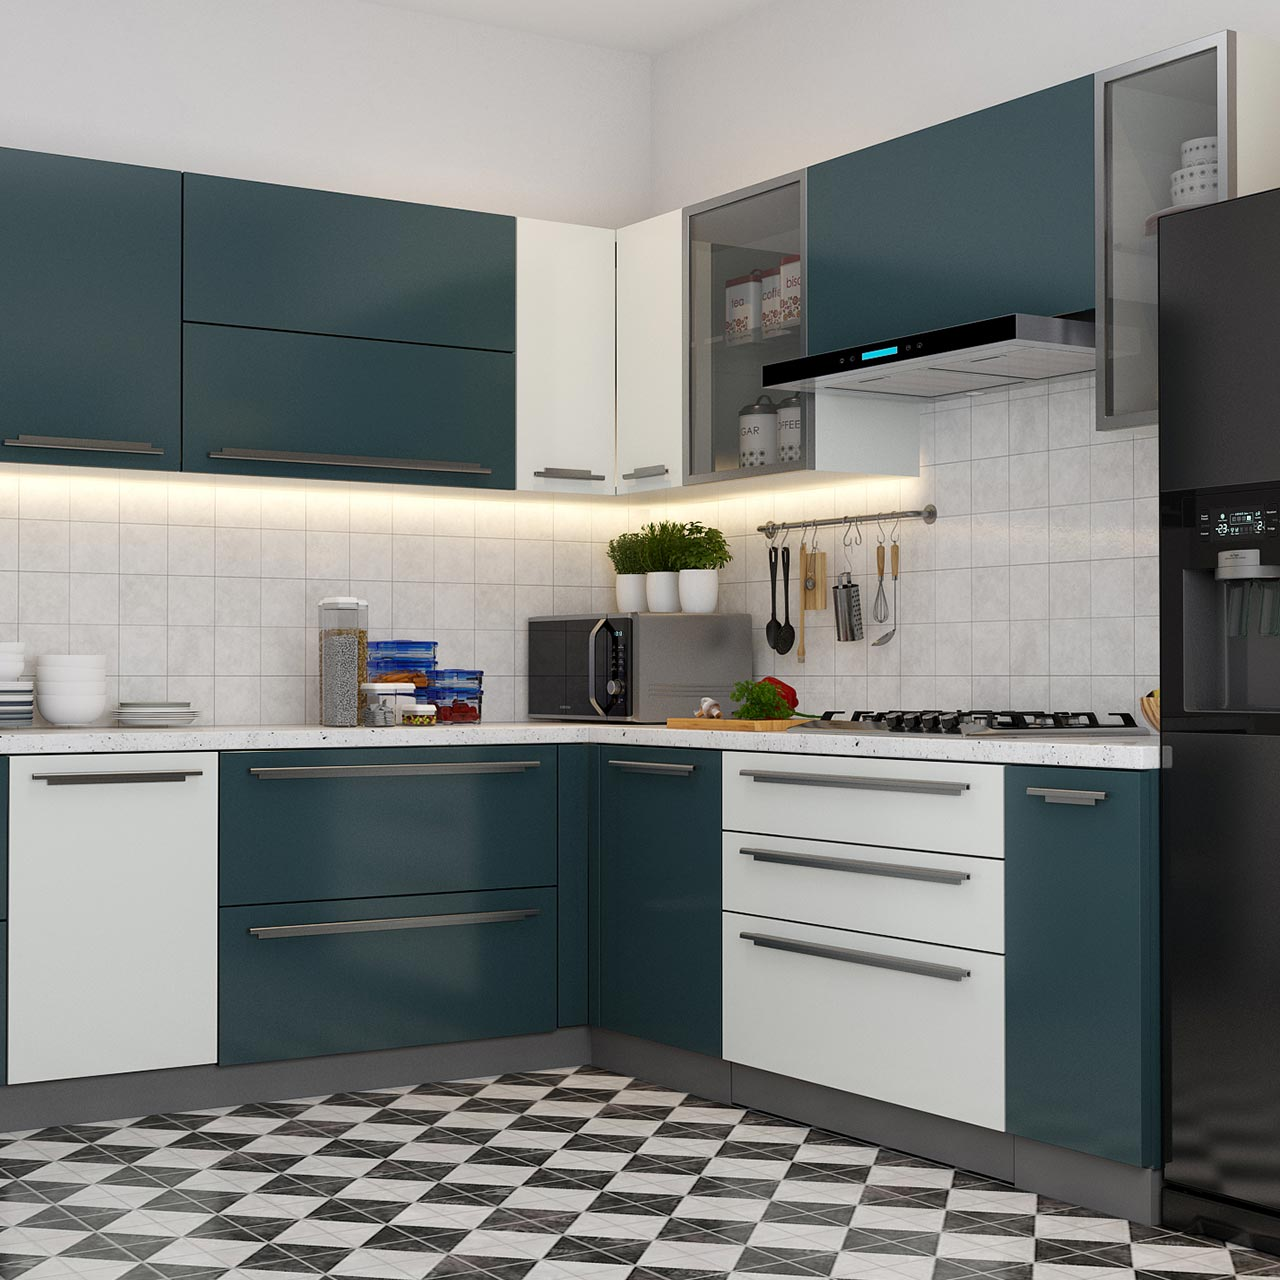 Modern kitchen cabinet design for your home with duco finish in kitchen cabinet pictures